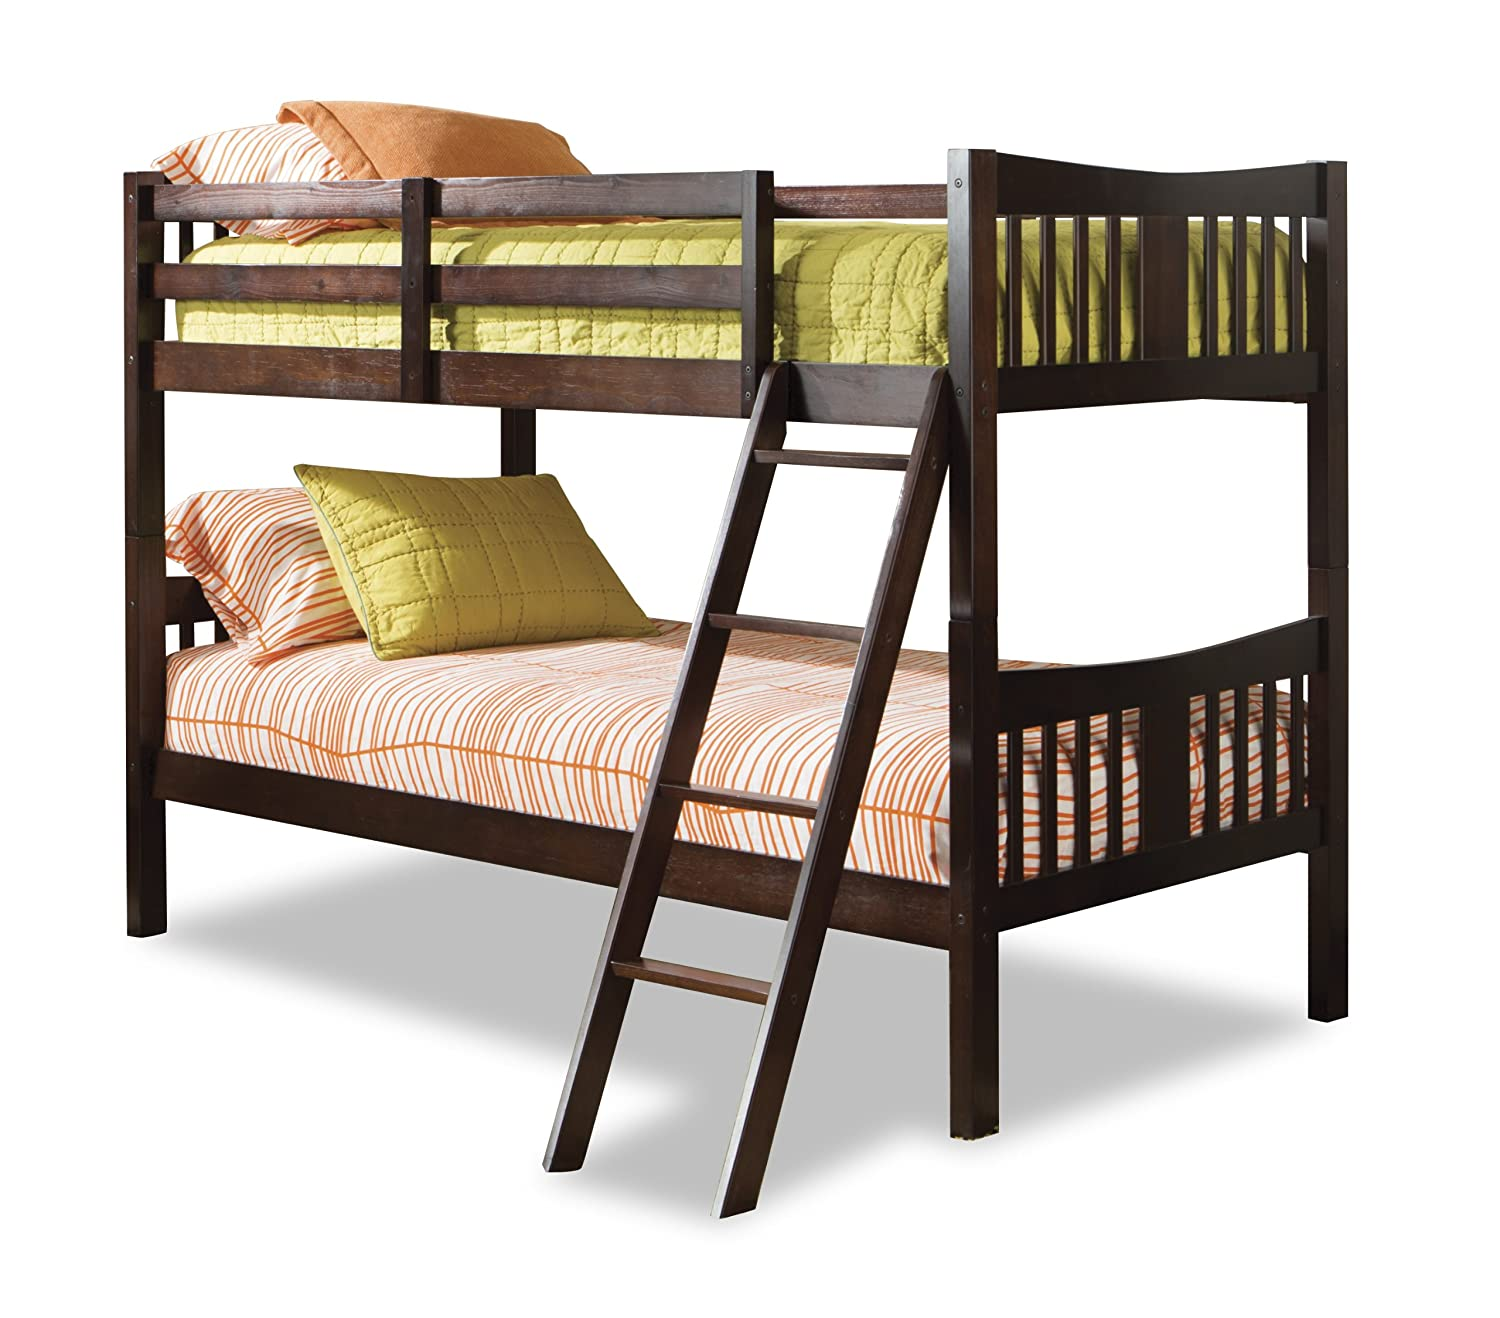 Twin Bunk Beds Espresso Wood Loft Kids Bedroom Furniture Convertible W Ladder